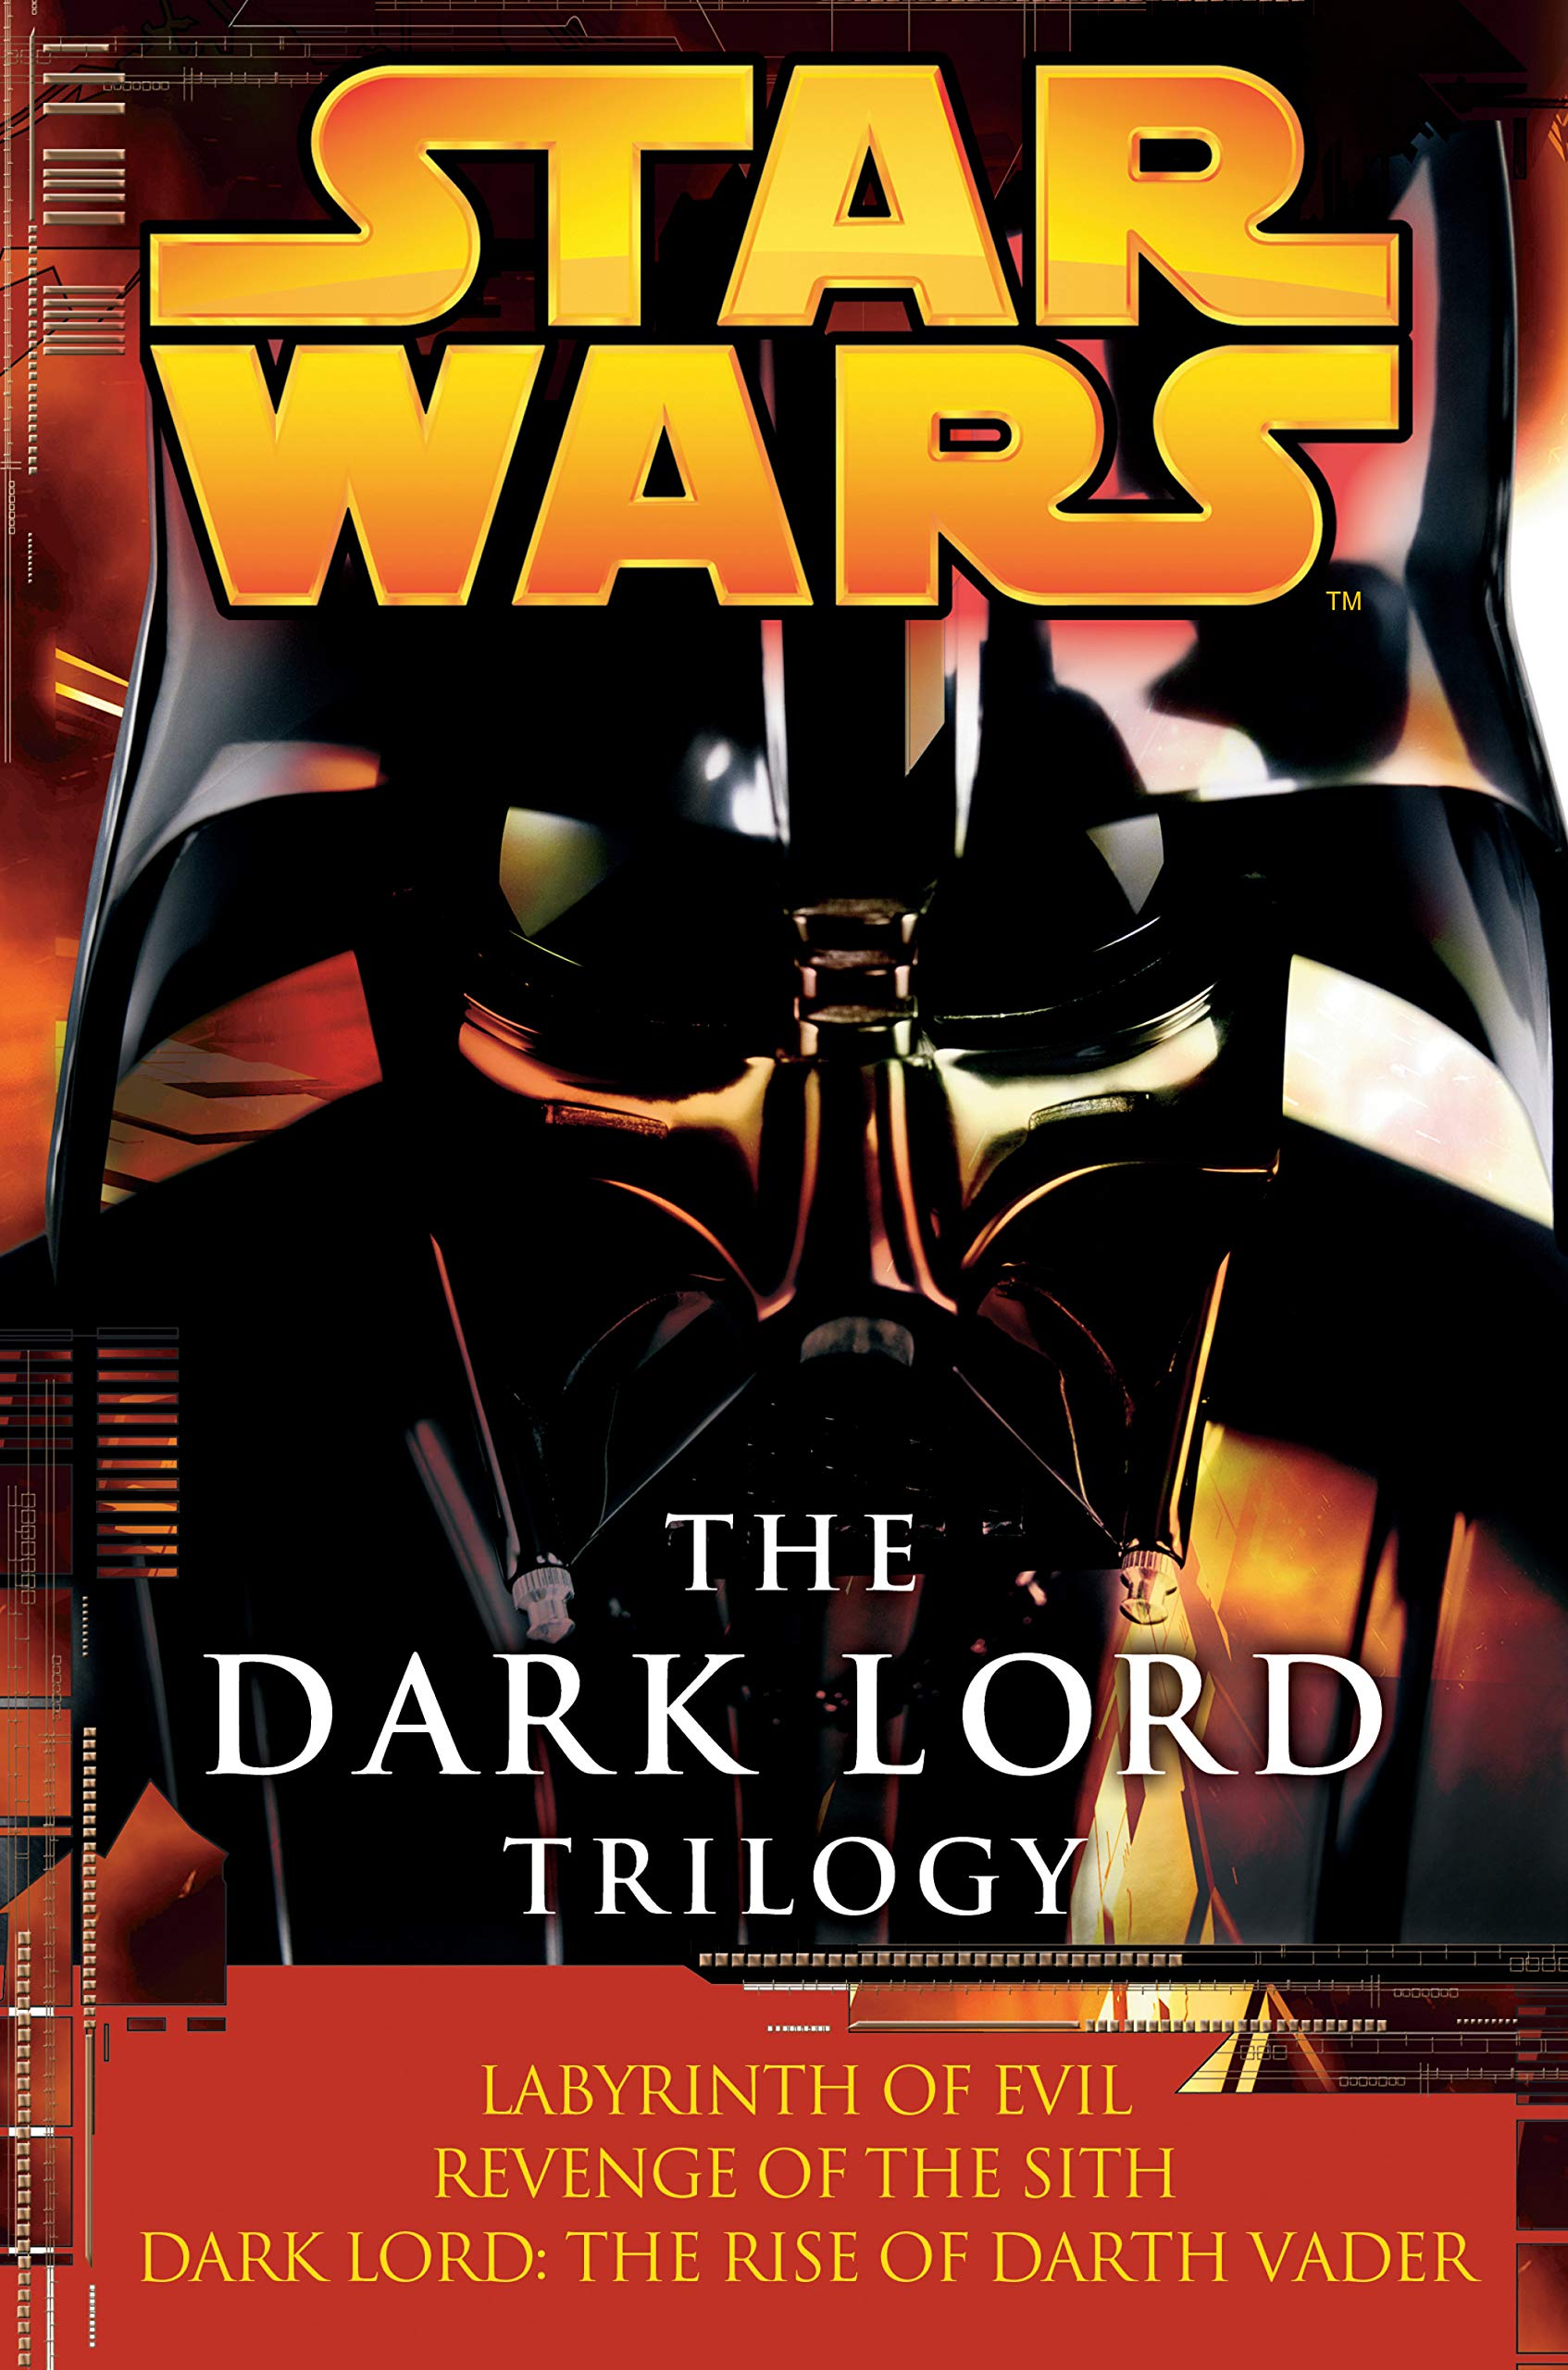 SW DARK LORD TRILOGY SW LEGEND: Labyrinth of Evil Revenge of the Sith Dark Lord: The Rise of Darth Vader Star Wars Random House Paperback: Amazon.es: Luceno, James, Stover, Matthew Woodring: Libros